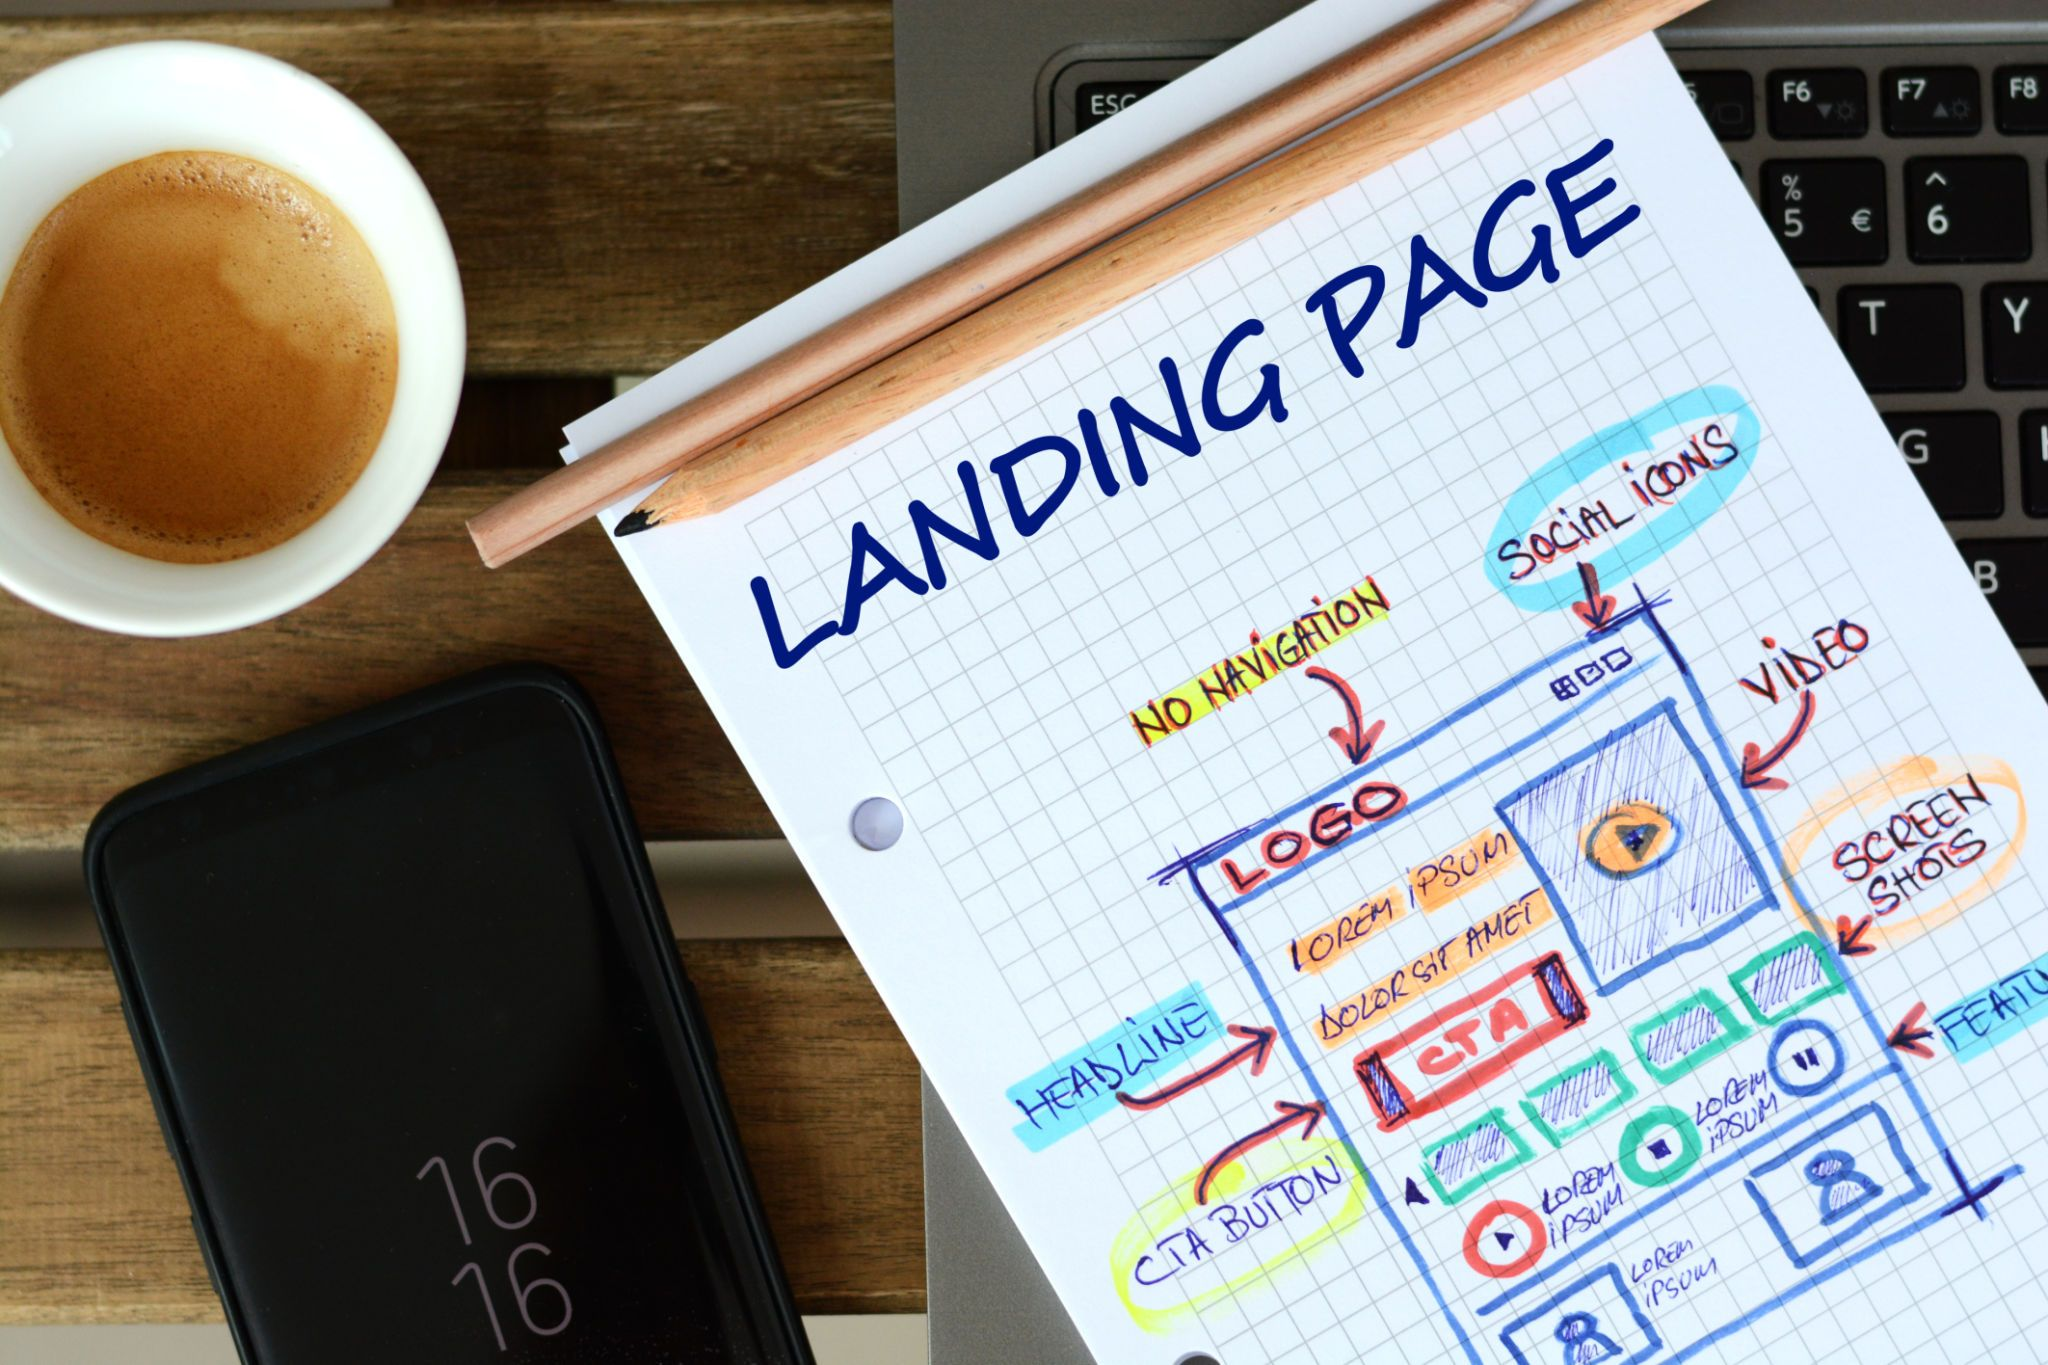 /saas-landing-page-optimization-5-hacks-to-get-more-conversions-n24q3506 feature image